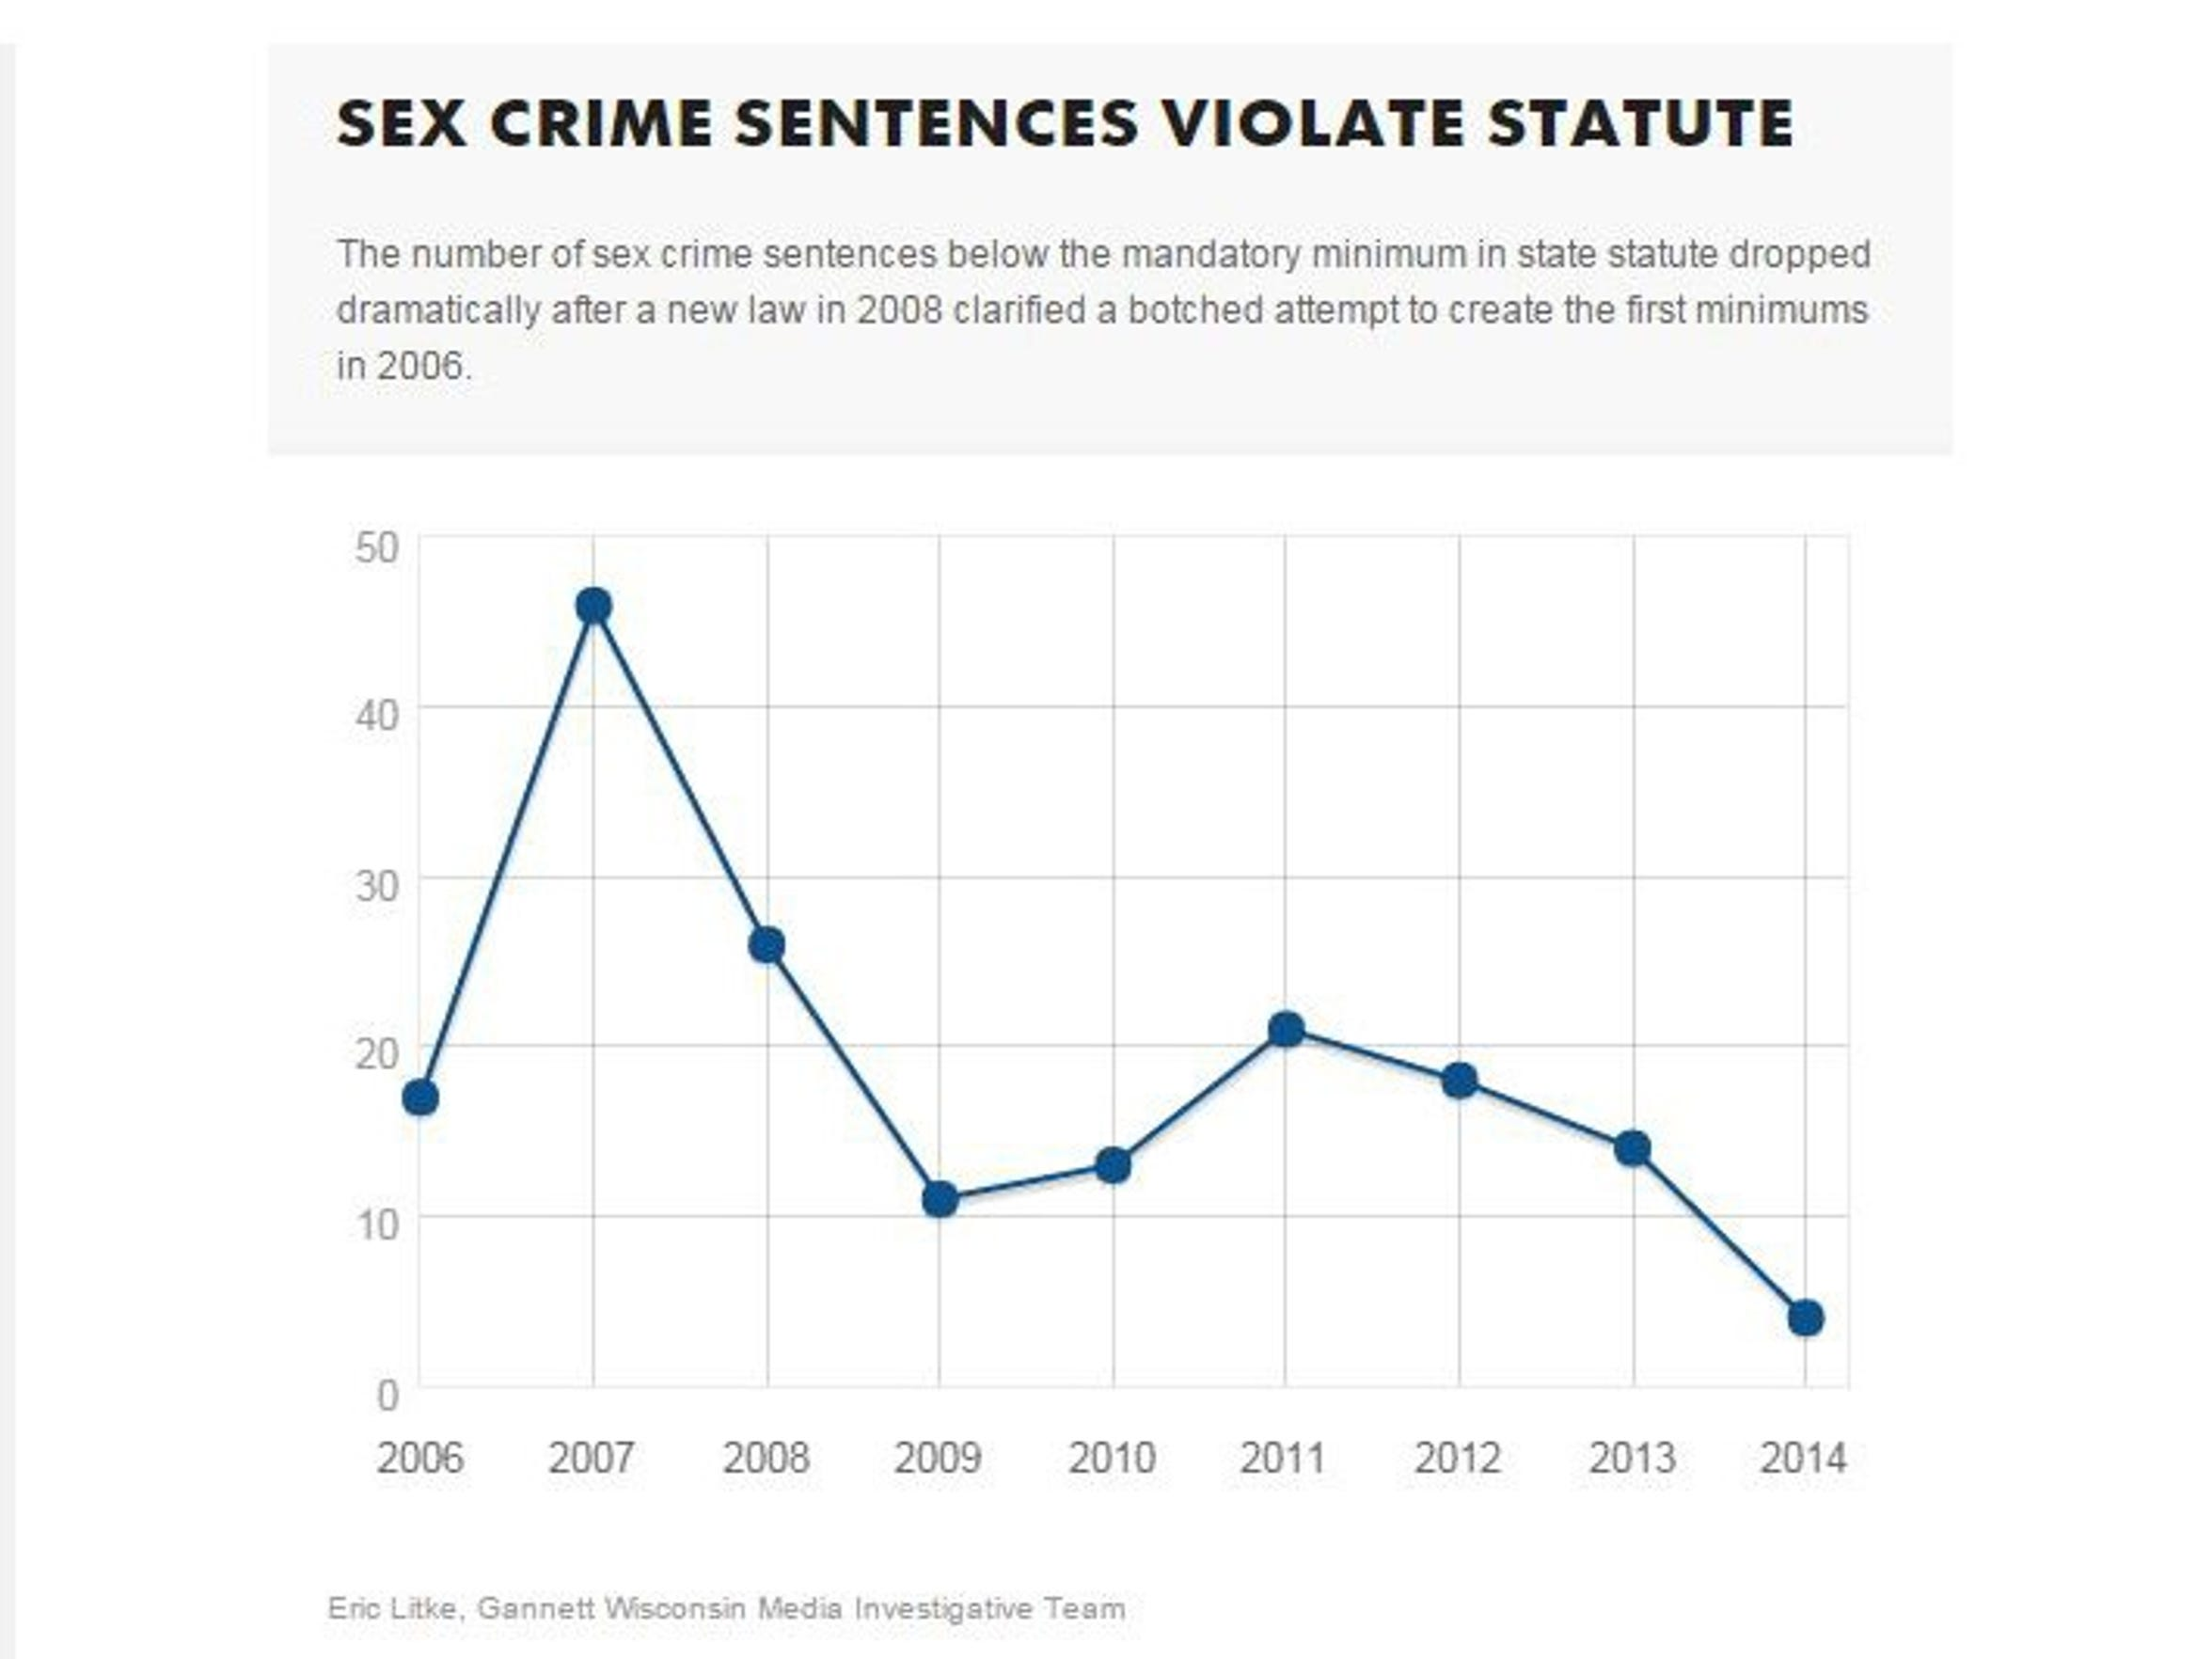 Sex crime sentences violate statute